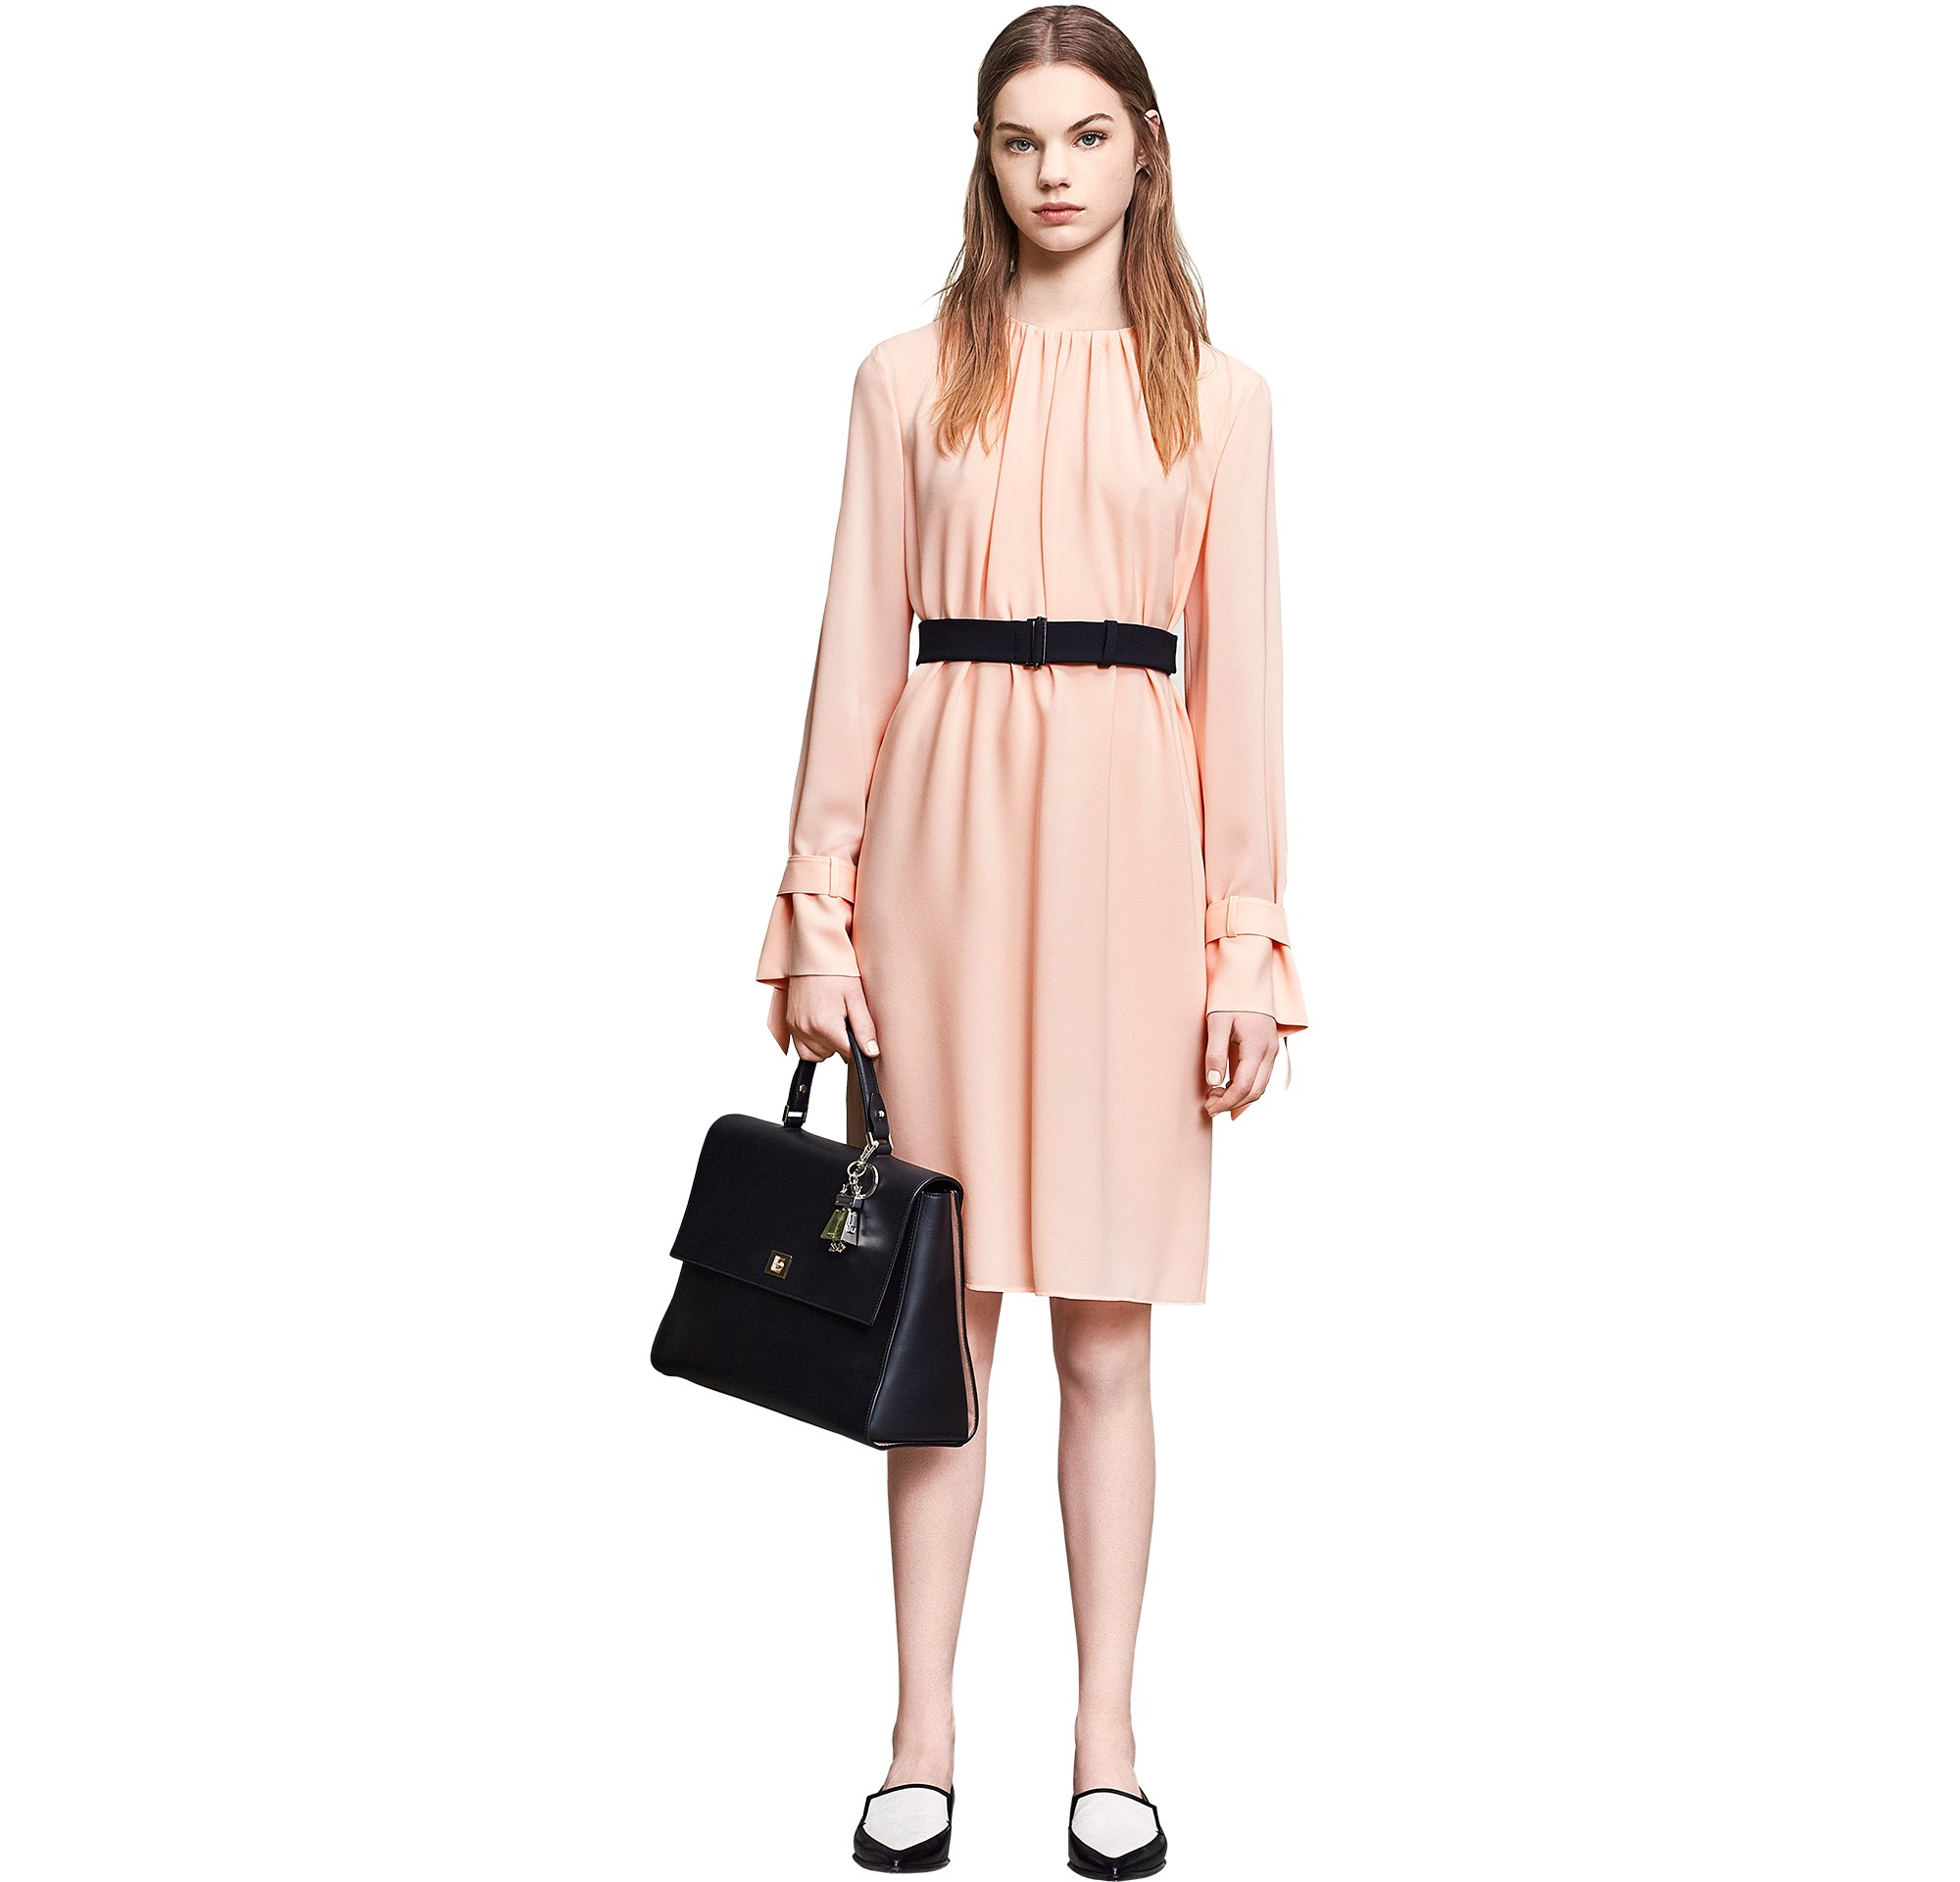 Pastel dress with black bag and shoes by BOSS